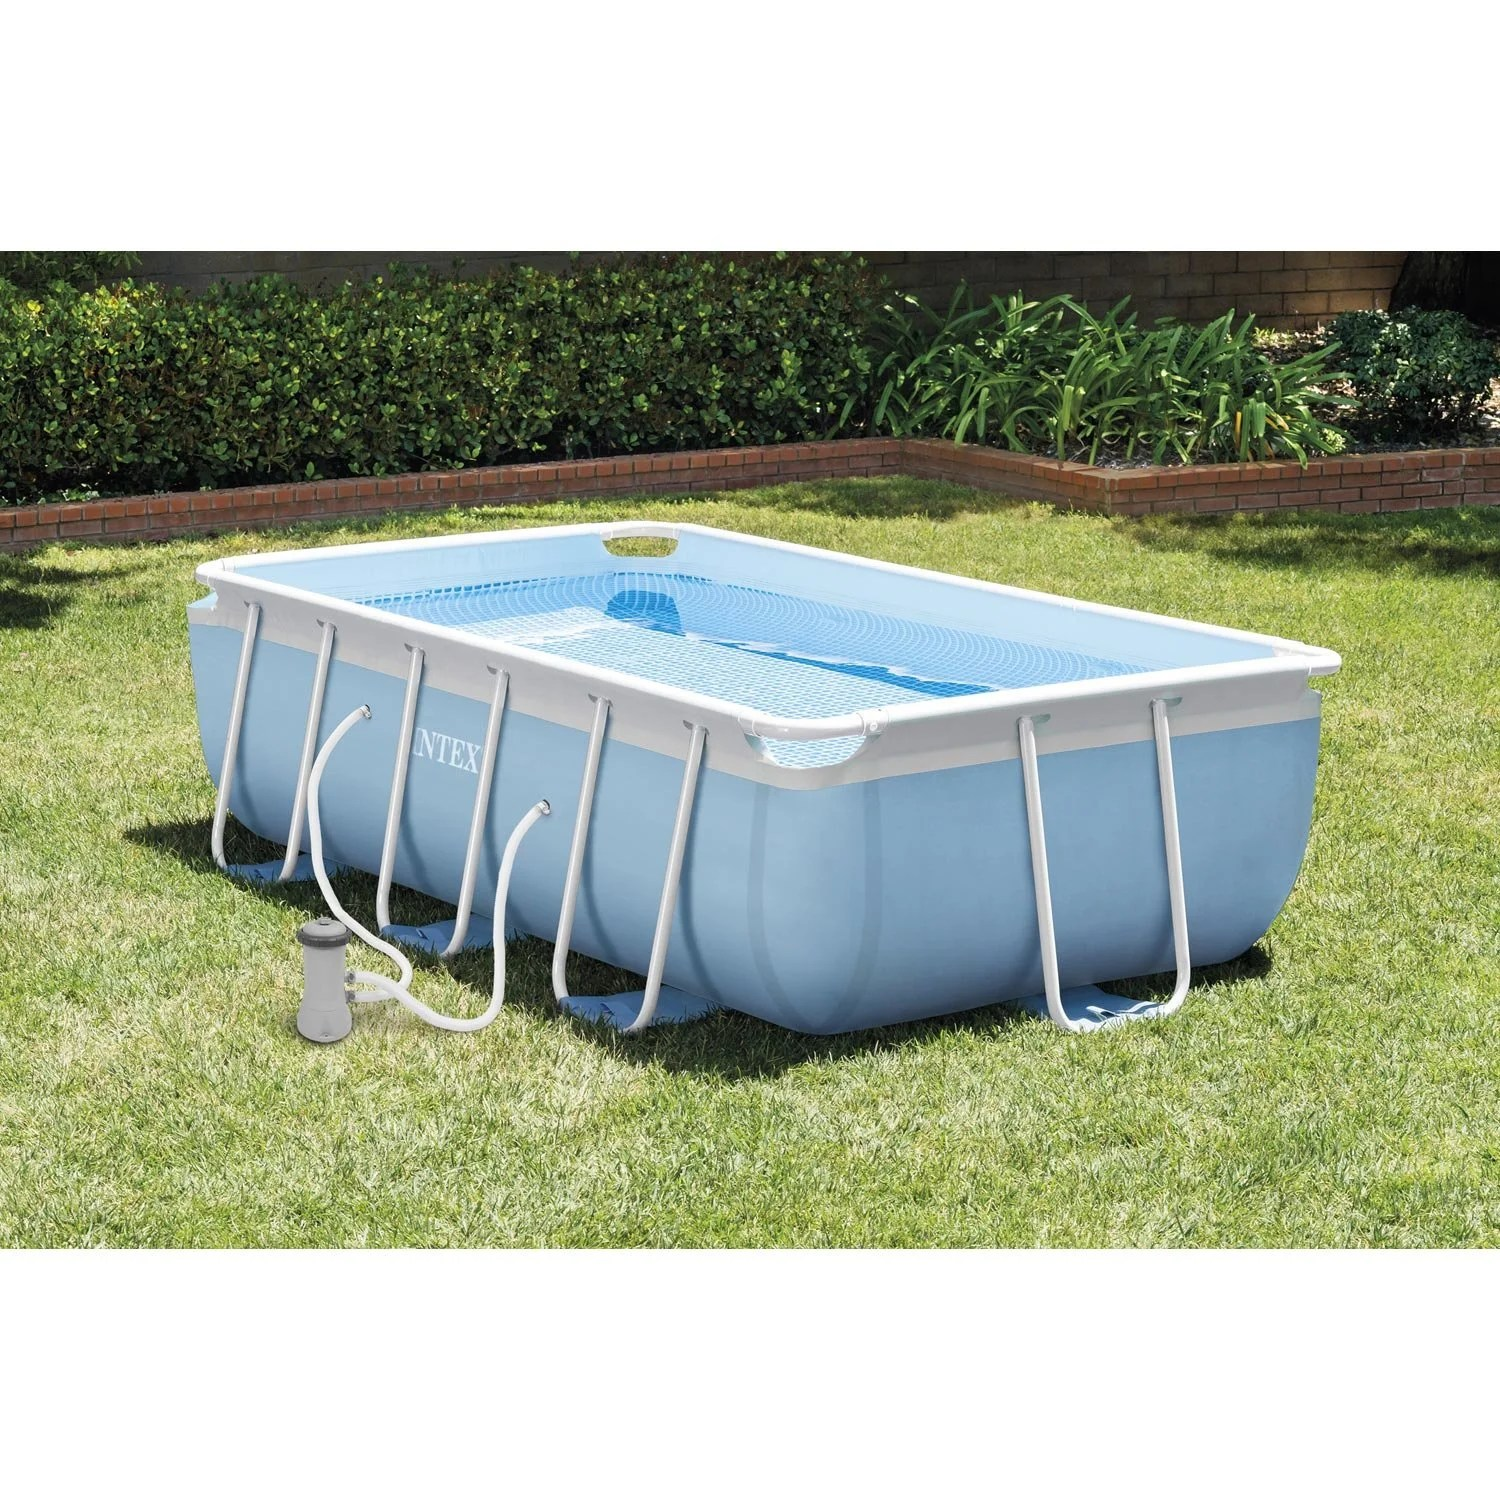 Dalle Terrasse Bricorama Piscine Hors Sol Autoportante Tubulaire Intex L 3 4 X L 2